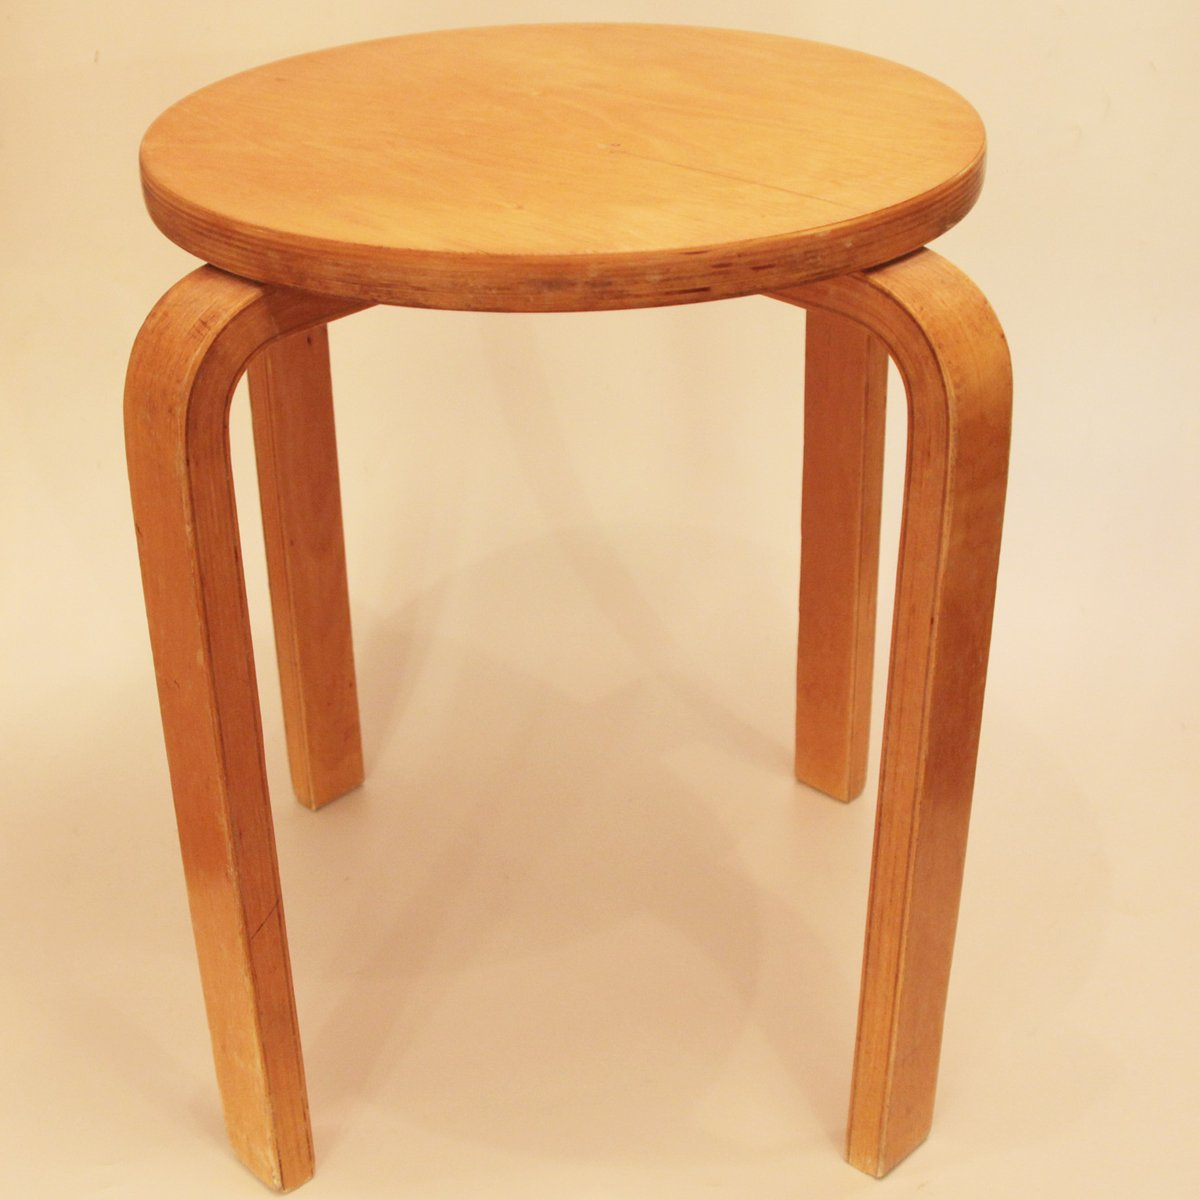 E60 Stool By Alvar Aalto For Artek For Sale At Pamono